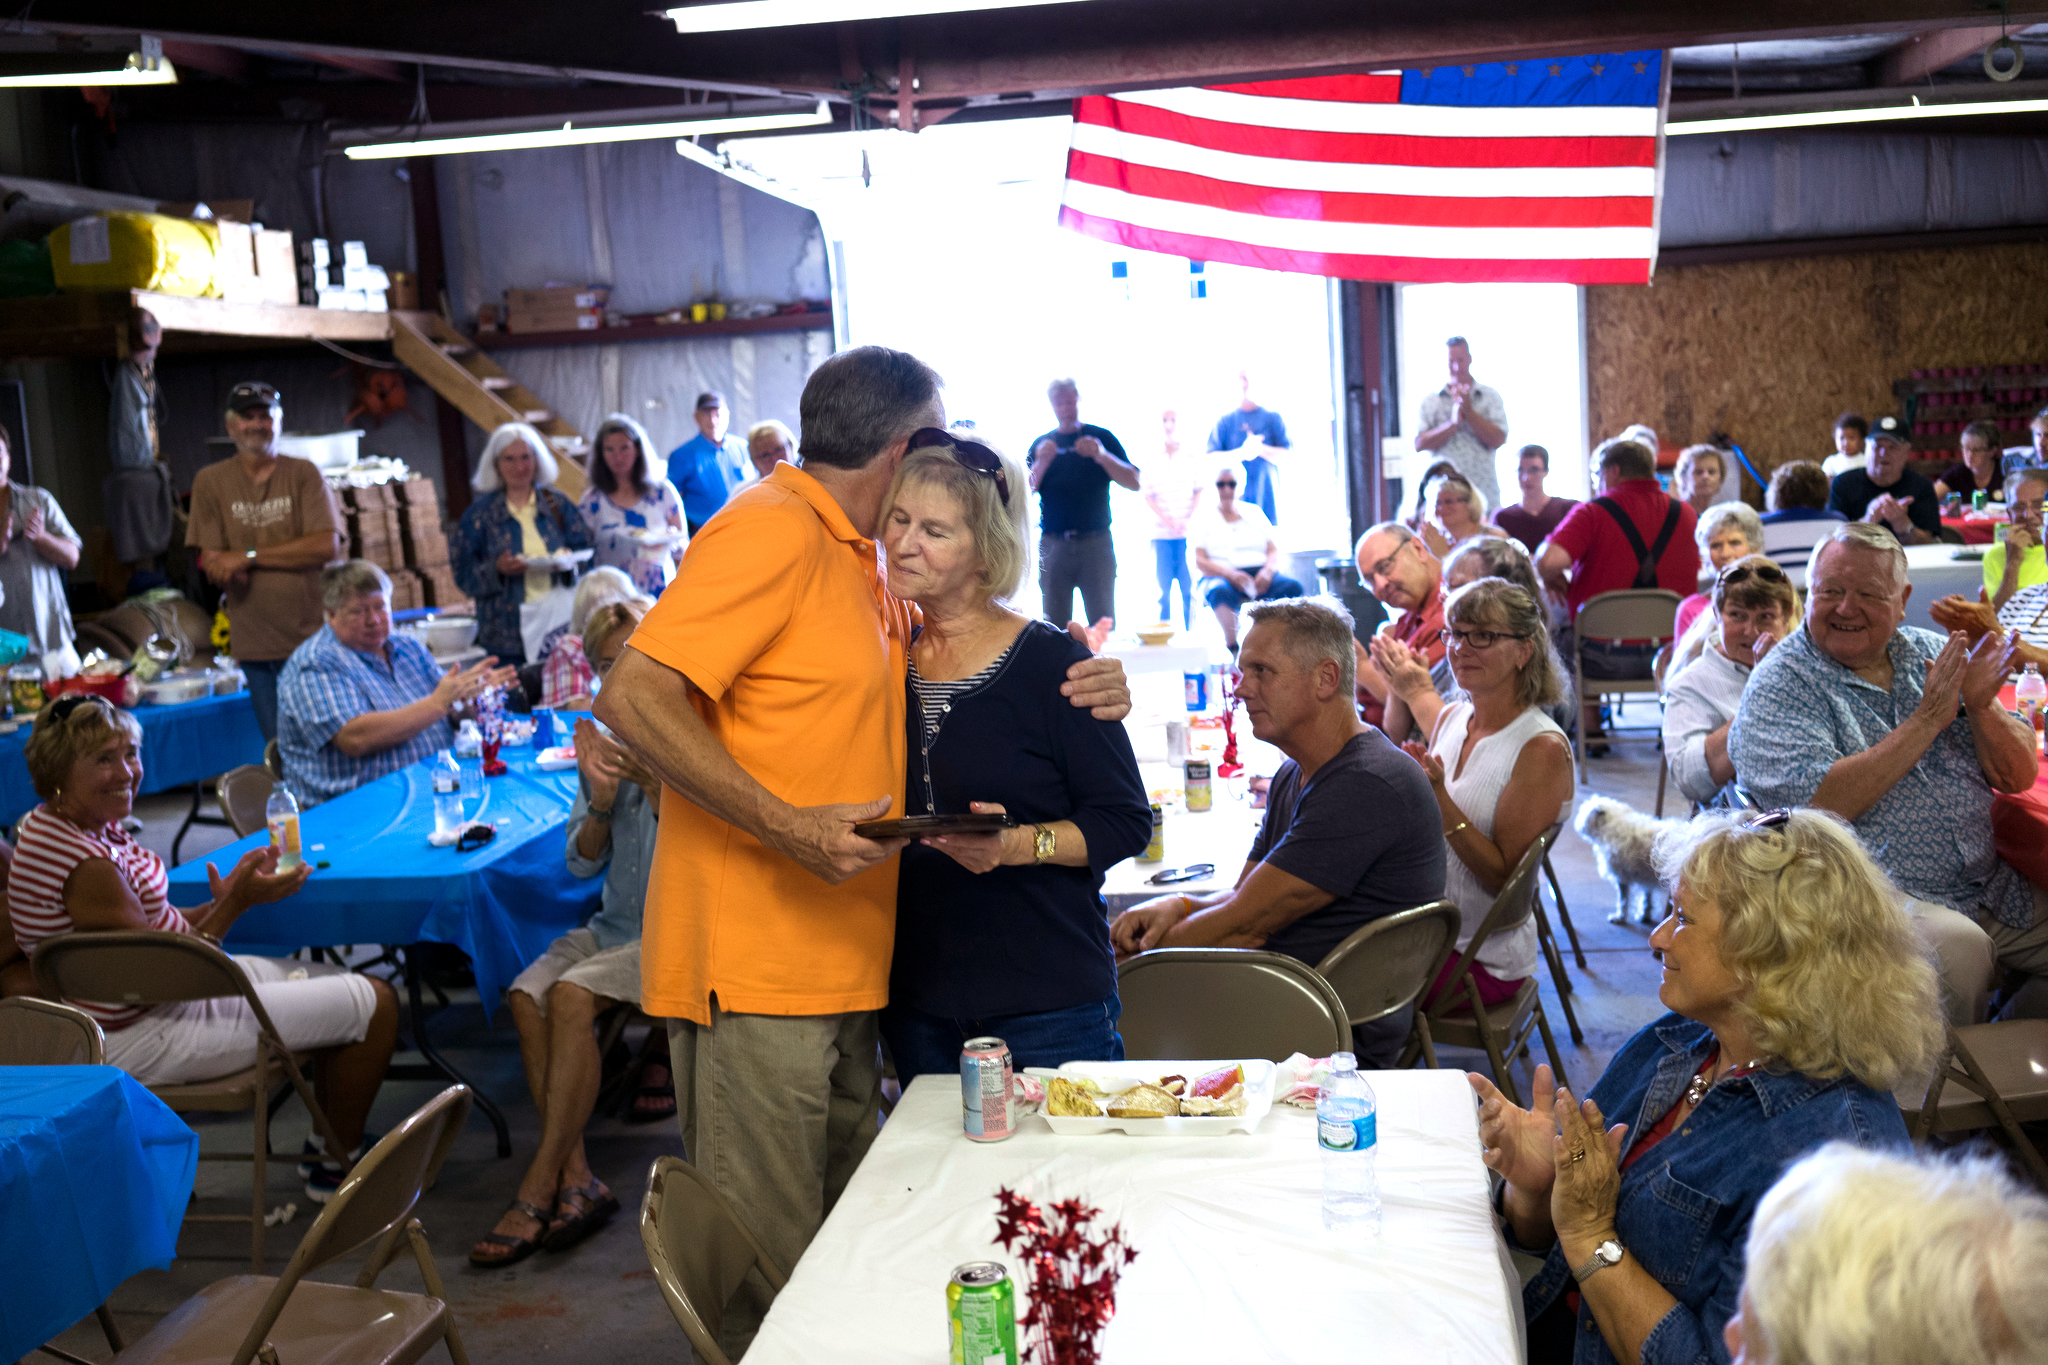 Betty Weborg is presented with a plaque honoring her late husband Jeff, a lifelong fisherman, as the family puts on their annual Labor Day fish boil near the family docks in Gills Rock, WI.